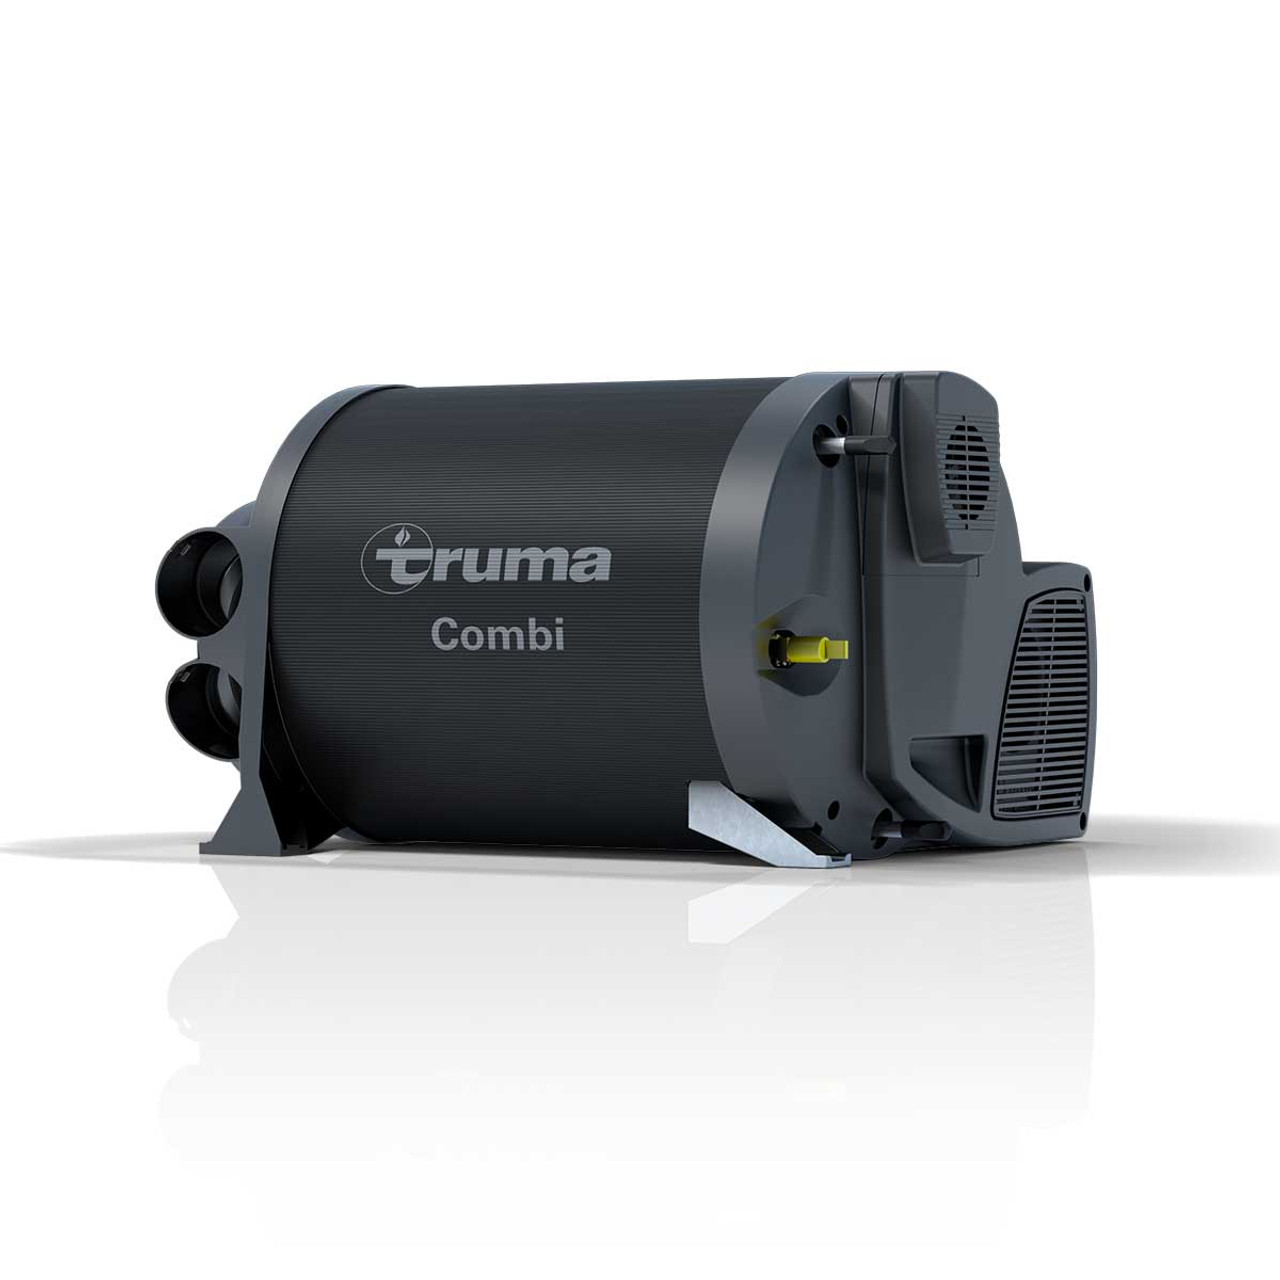 The Truma Combi D6E water and air space heater is a compact and lightweight unit